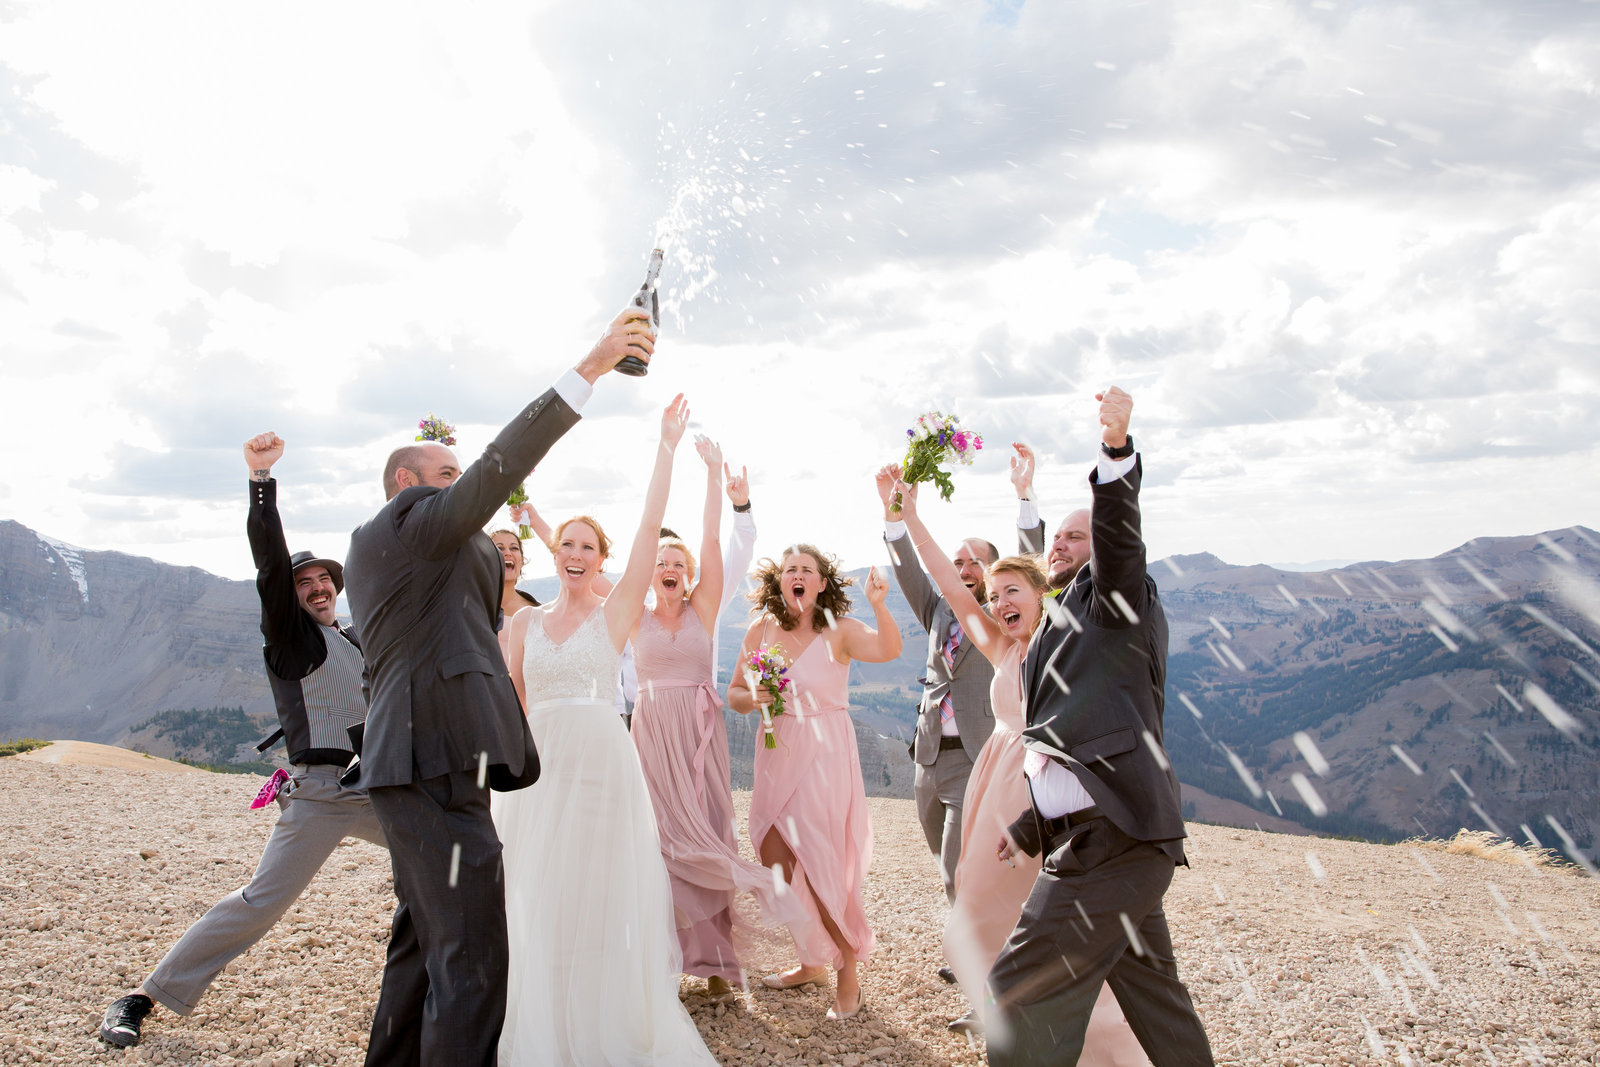 Jackson Hole Ski resort wedding party celebration